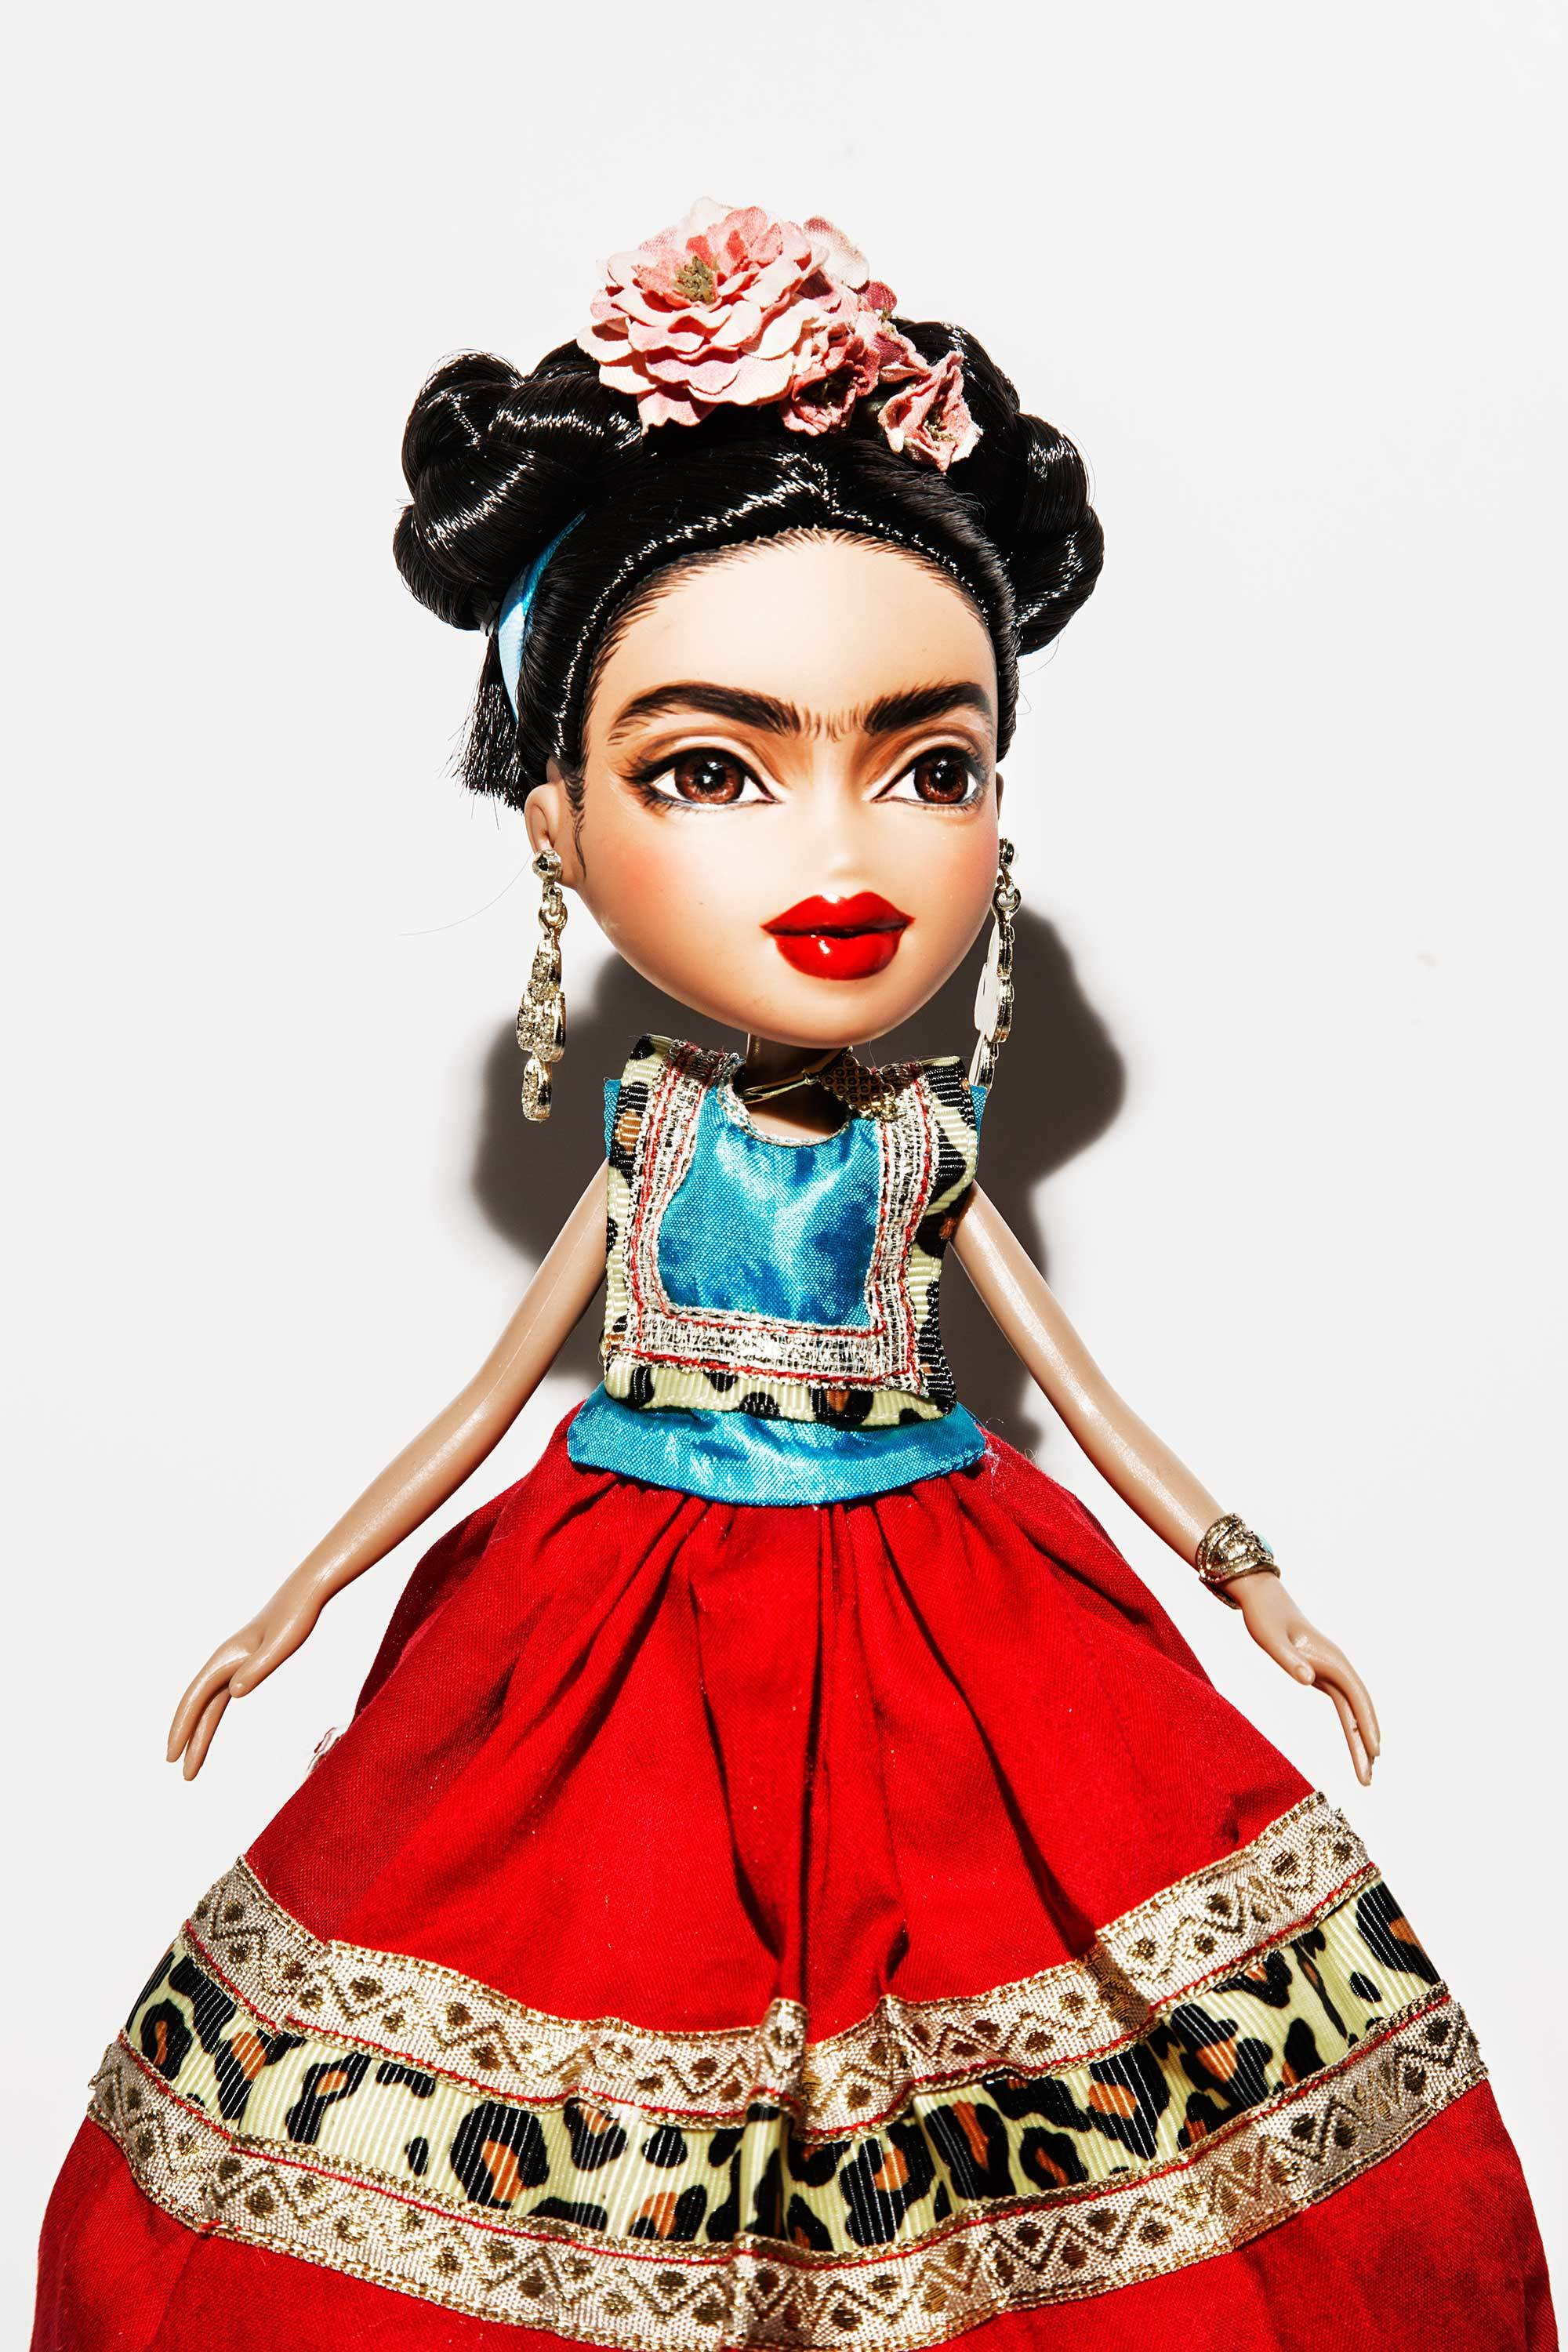 Meet the Designers Behind the Controversial Bratz Dolls Broadly